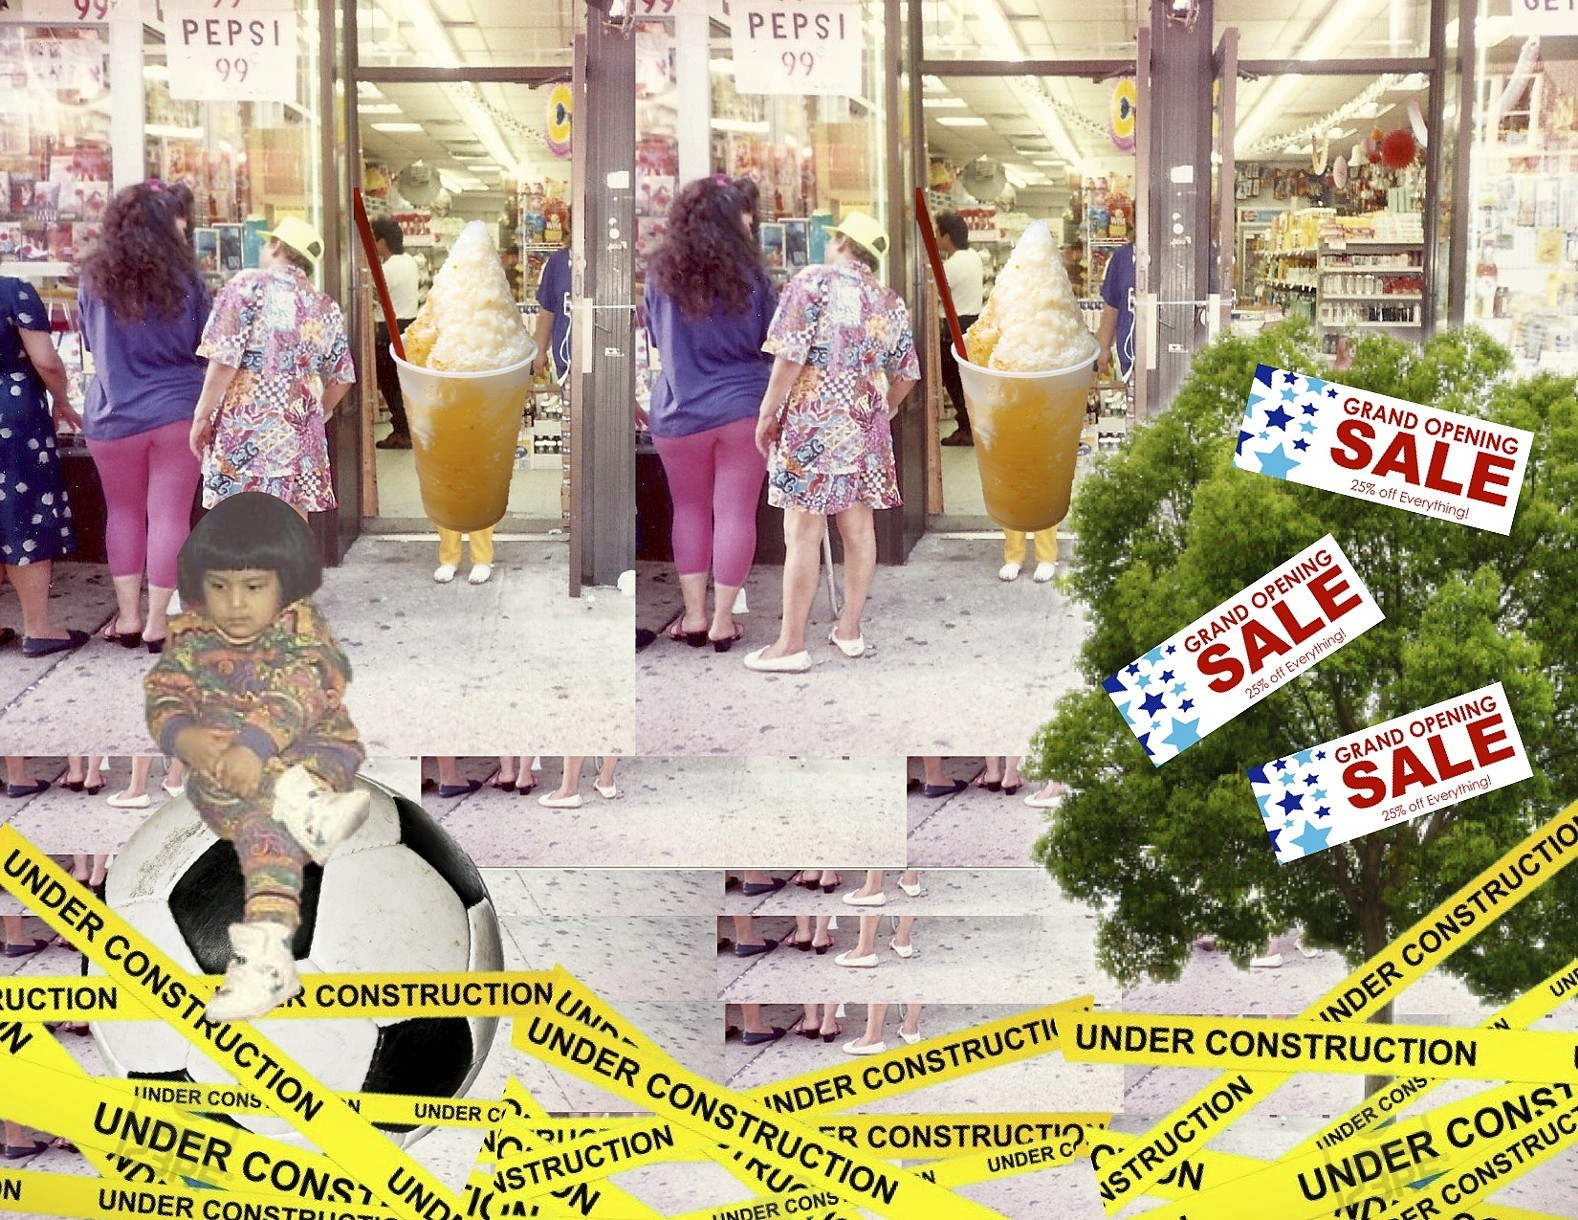 collage with people, building, under construction tape, grand opening sale signs, and more